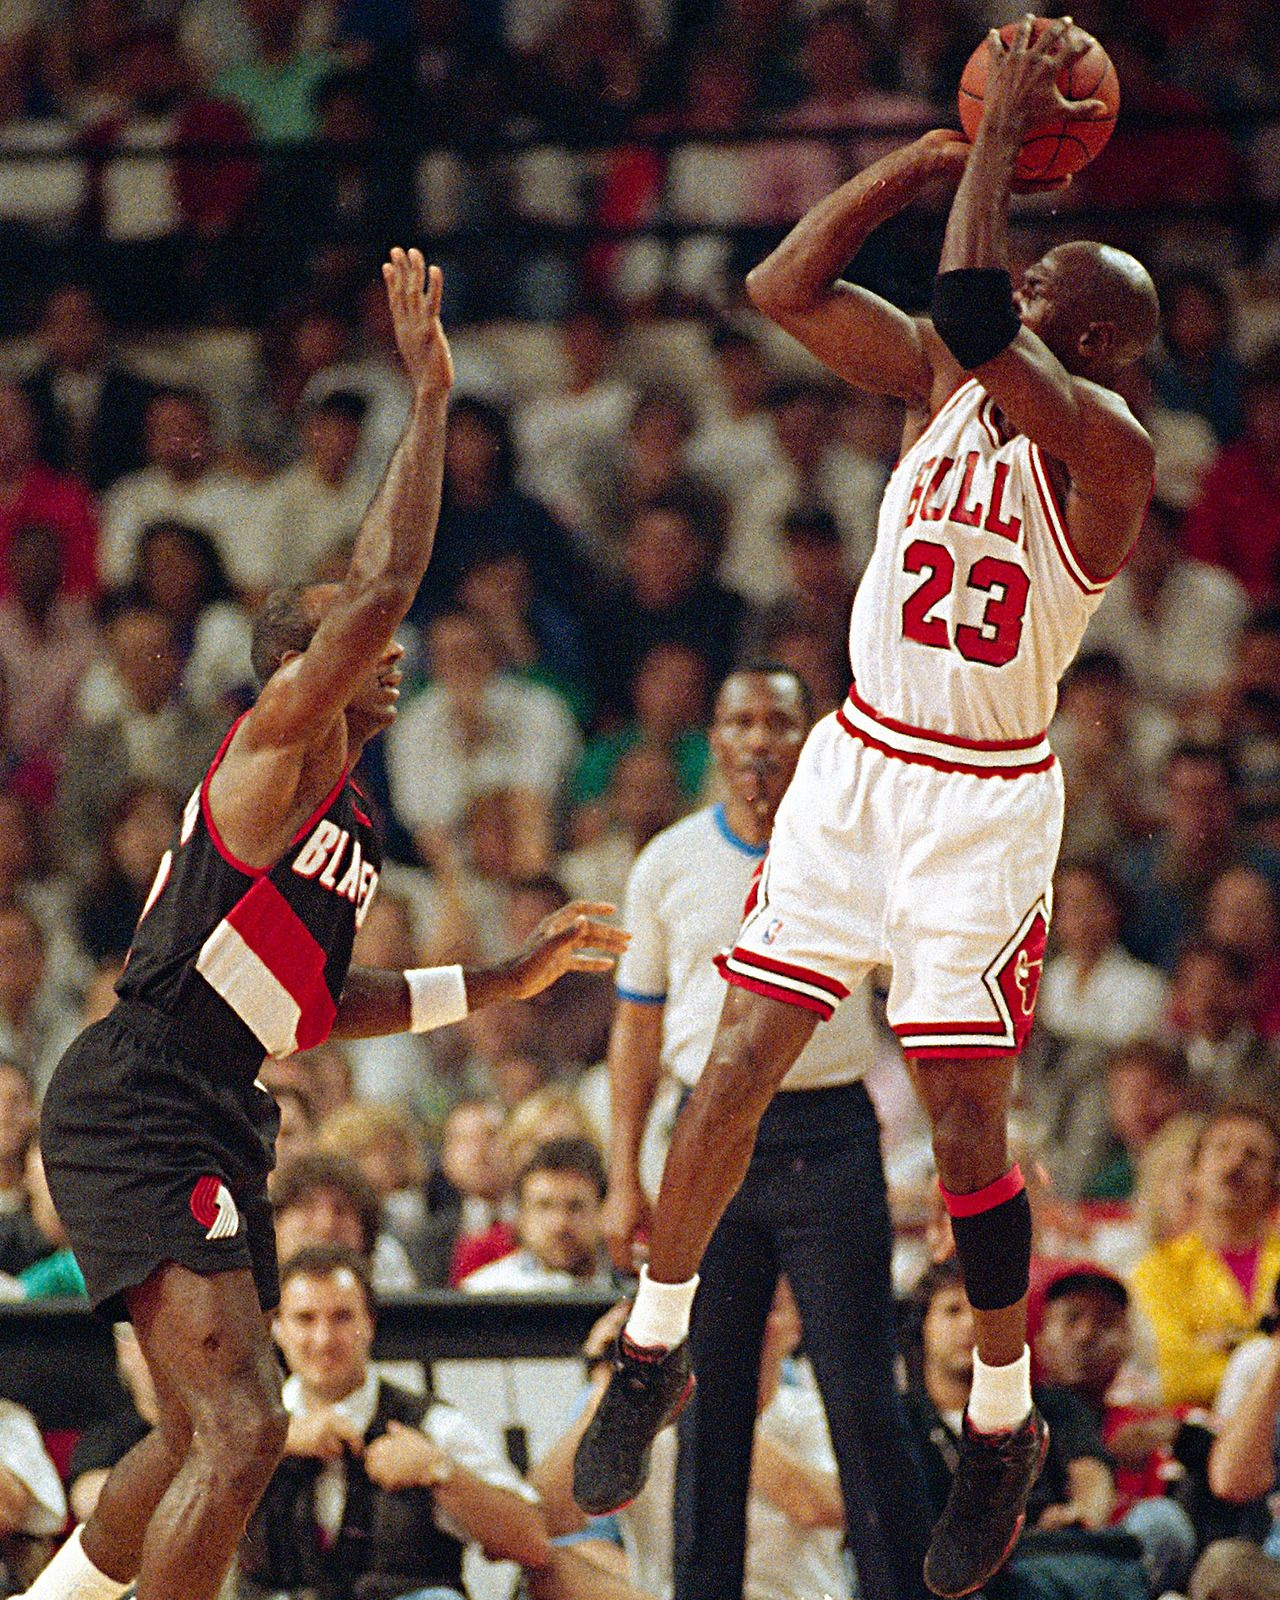 """June 3, 1992 - Host Chicago defeated Portland 122-89 in Game 1 of the NBA Finals. Michael Jordan, who finished with a game-high 39 points, set NBA Finals records for points scored in a half (35) and 3-pointers made in one half (six). After the sixth trey, Jordan turned to the midcourt TV camera and shrugged as if to say, """"I guess everything's going in."""""""